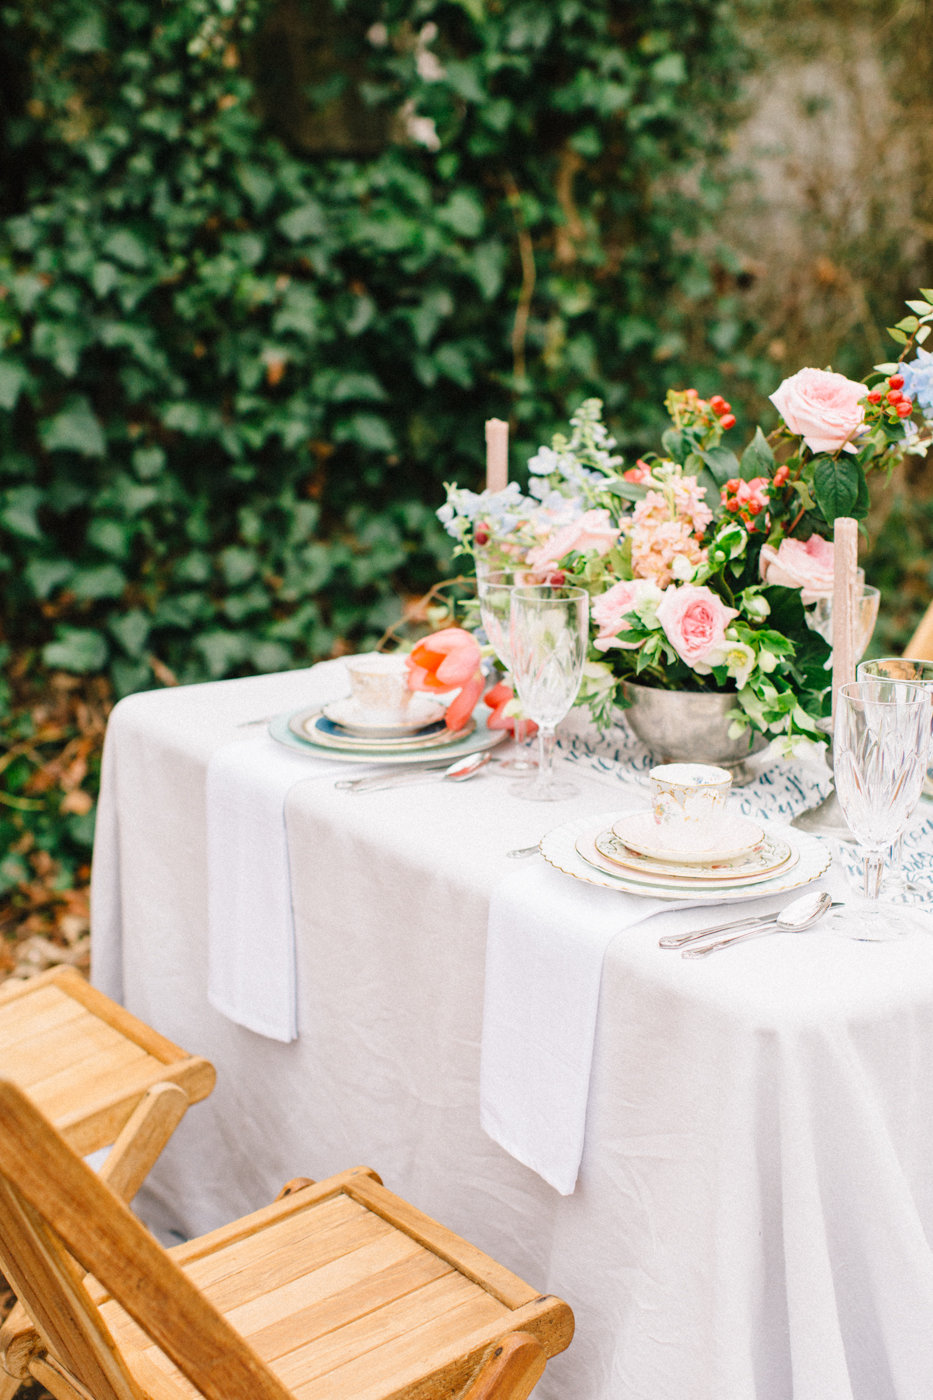 romantic garden weddings - photo by 4 Corners Photography http://ruffledblog.com/backyard-elopement-inspiration-for-valentines-day